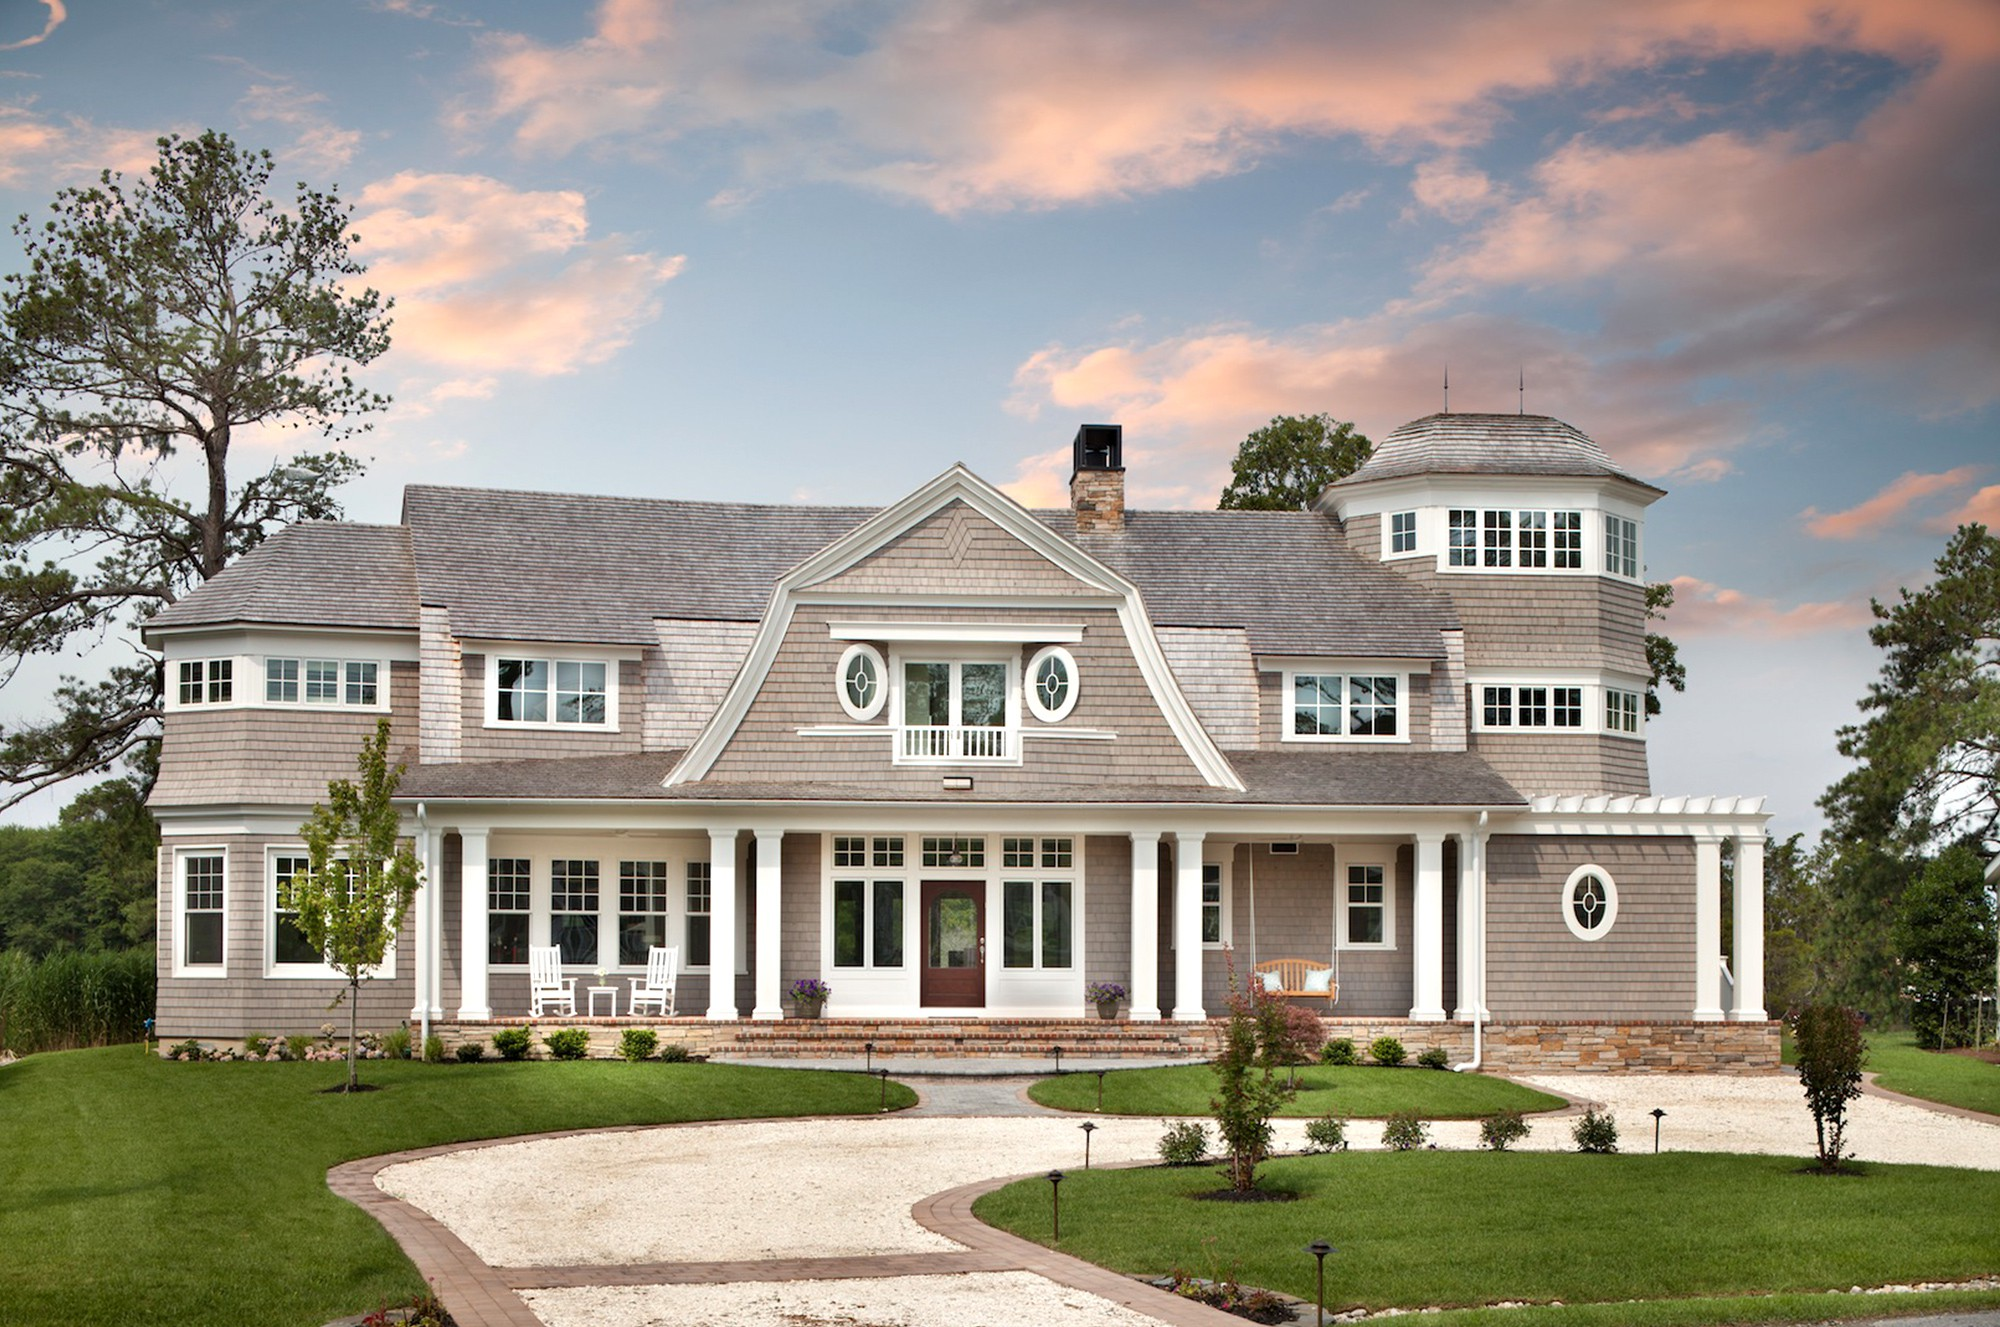 Custom homes renovation remodeling construction firm for Architectural exterior design virginia beach